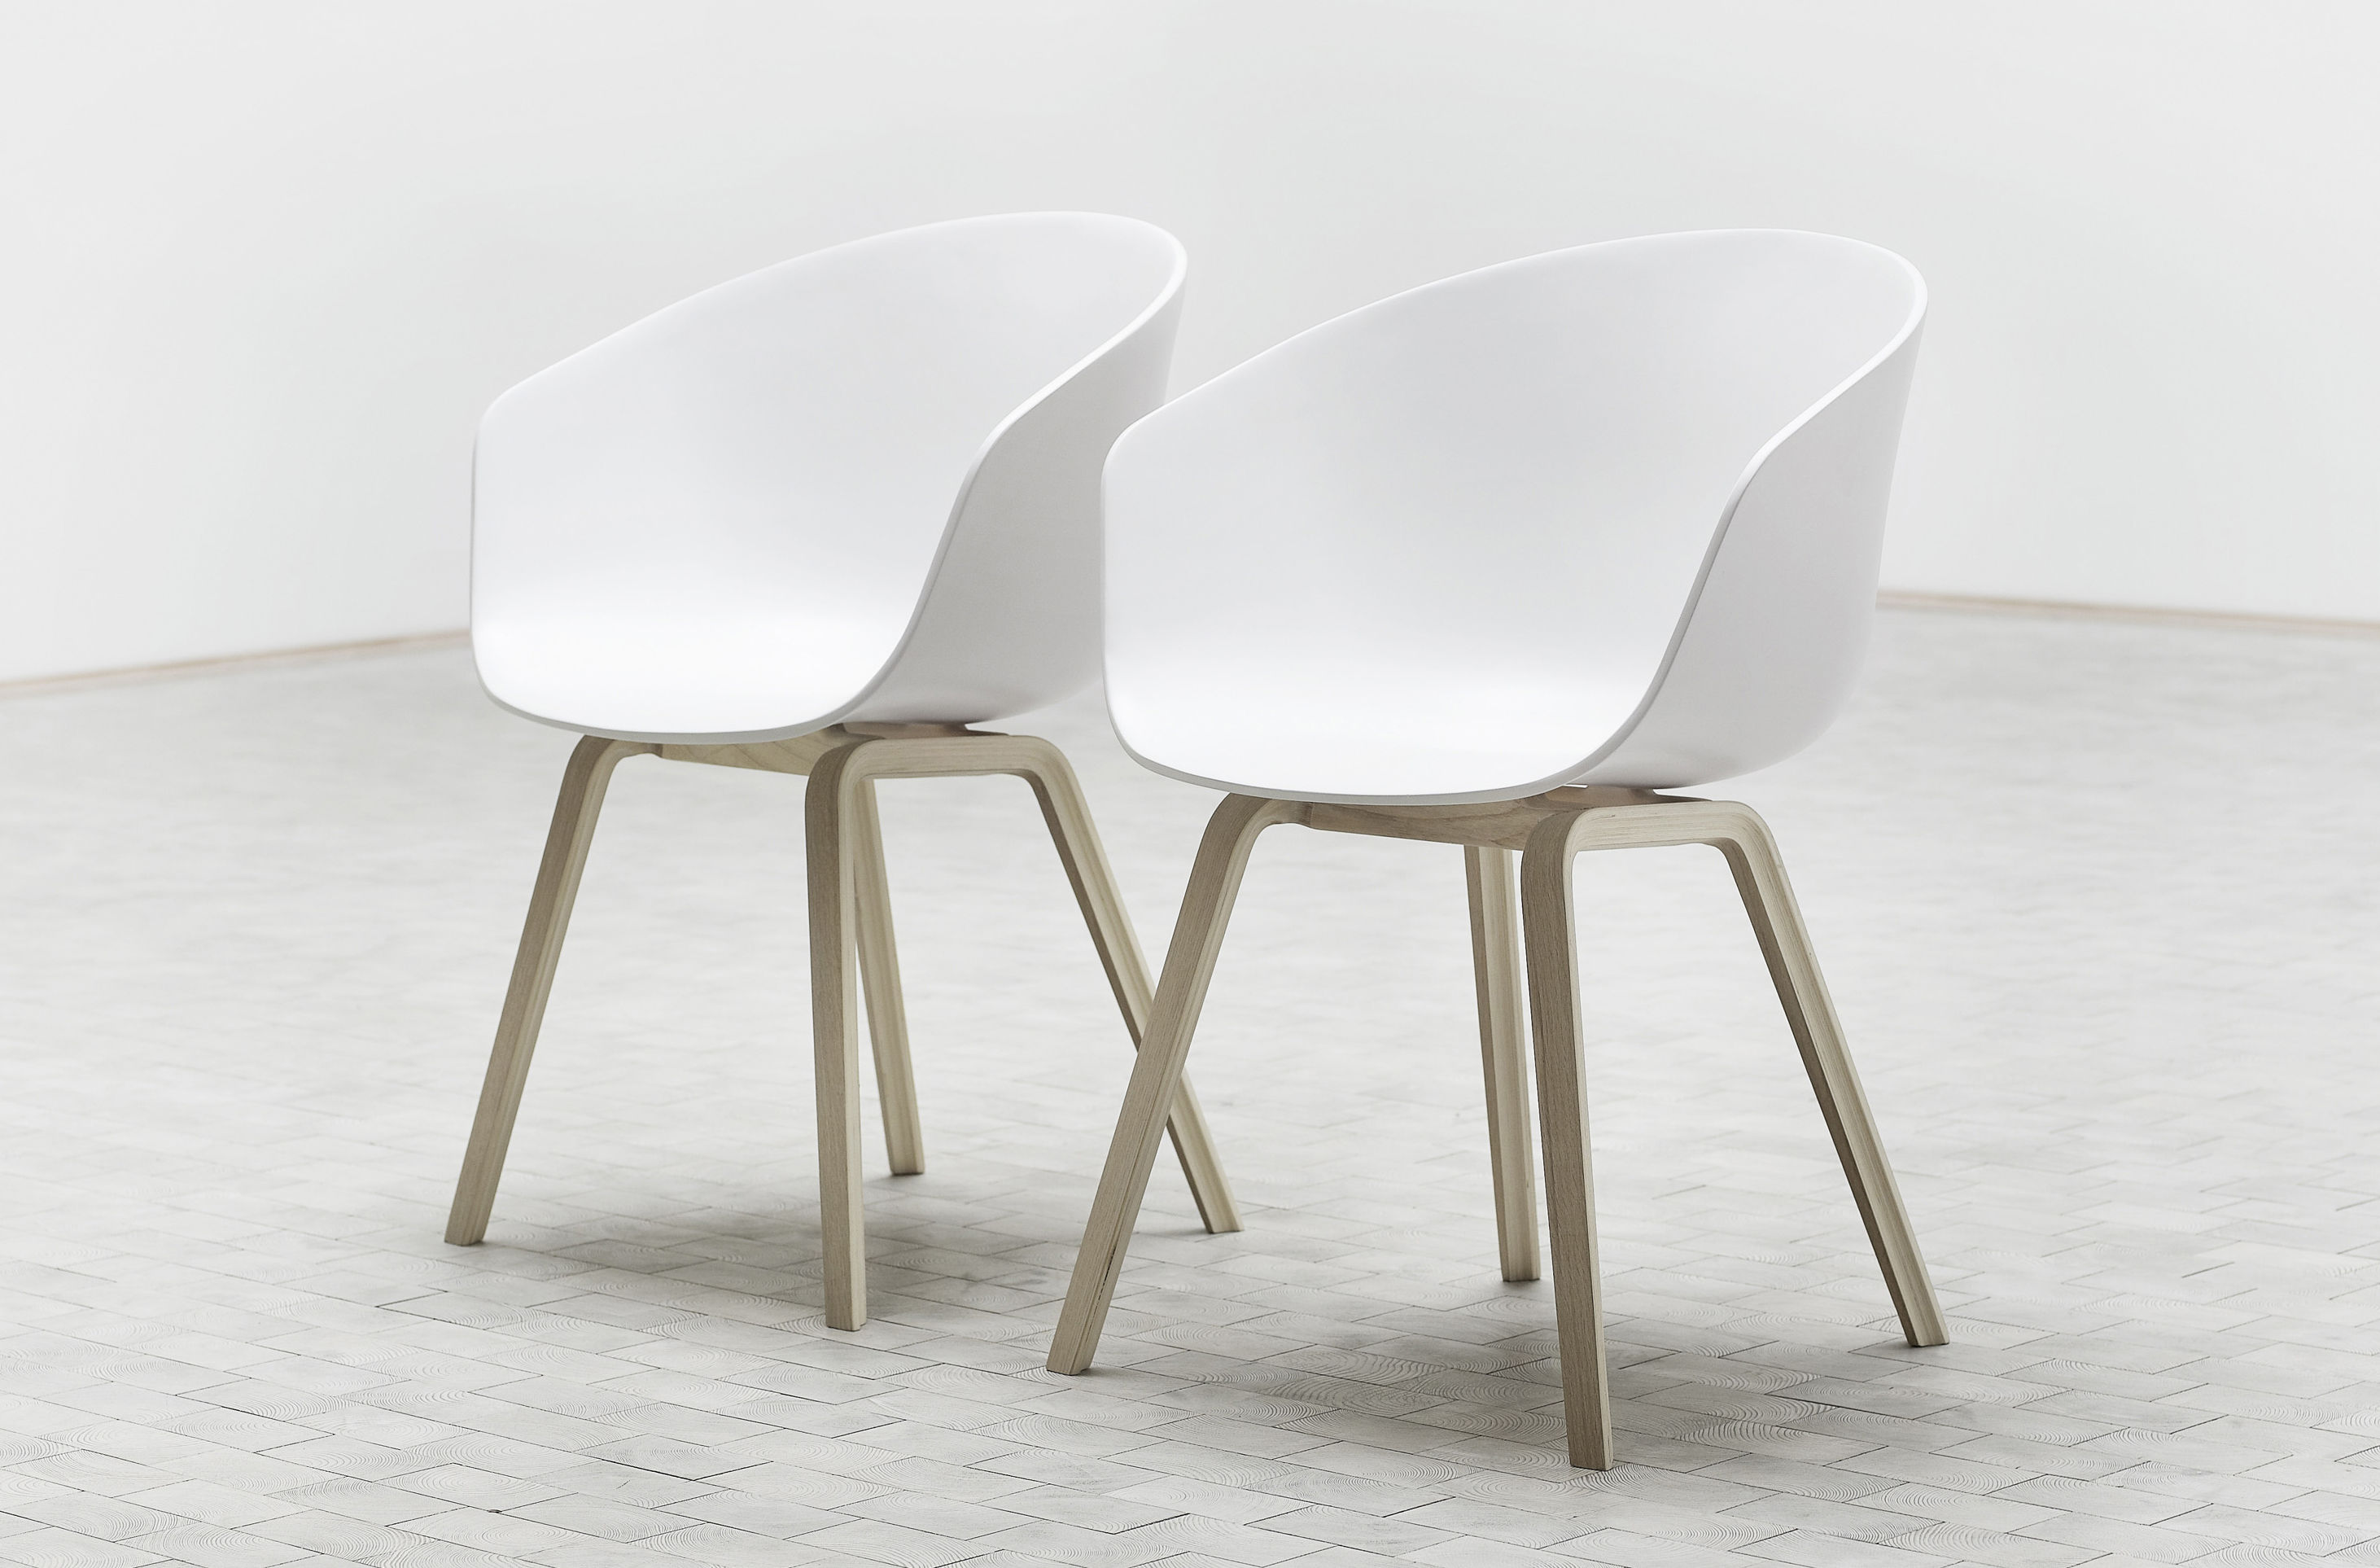 Fauteuil about a chair aac22 hay blanc pieds bois naturel l 50